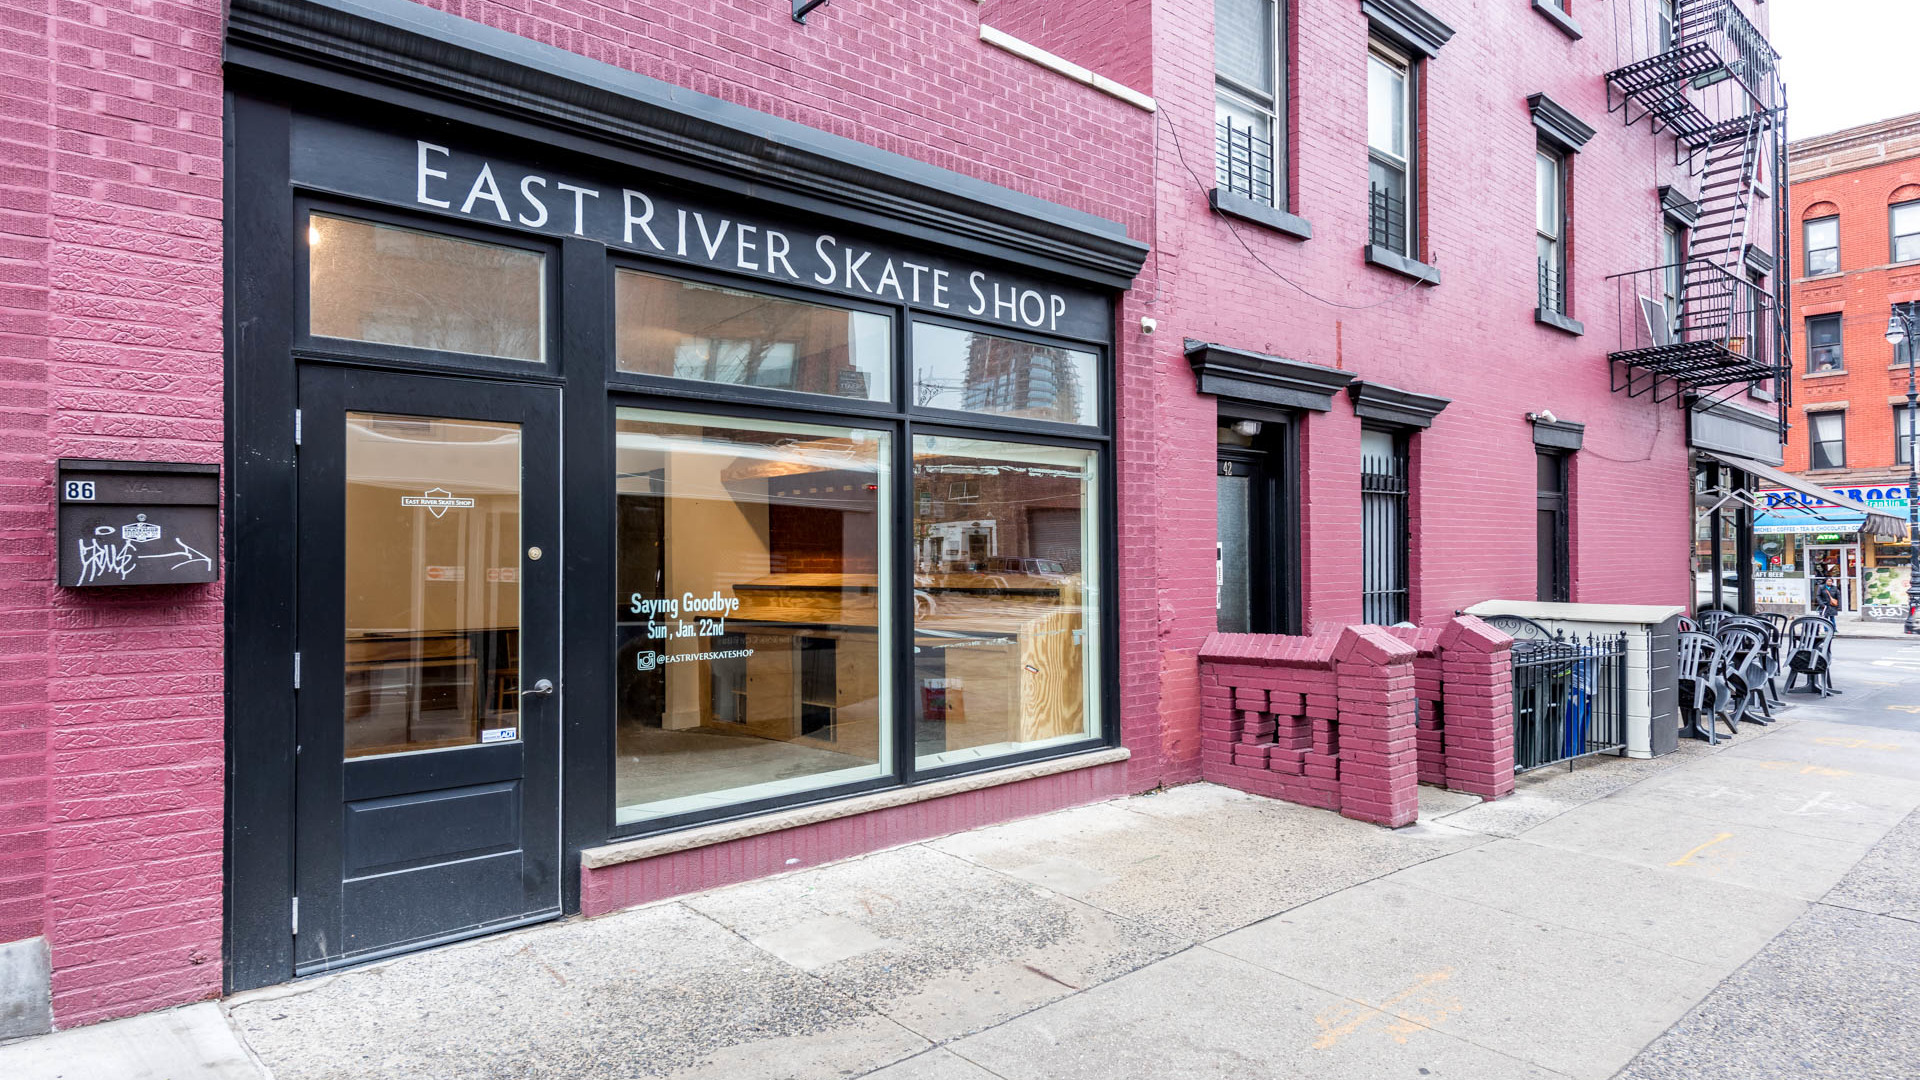 A $4,000 commercial property in Greenpoint, Brooklyn